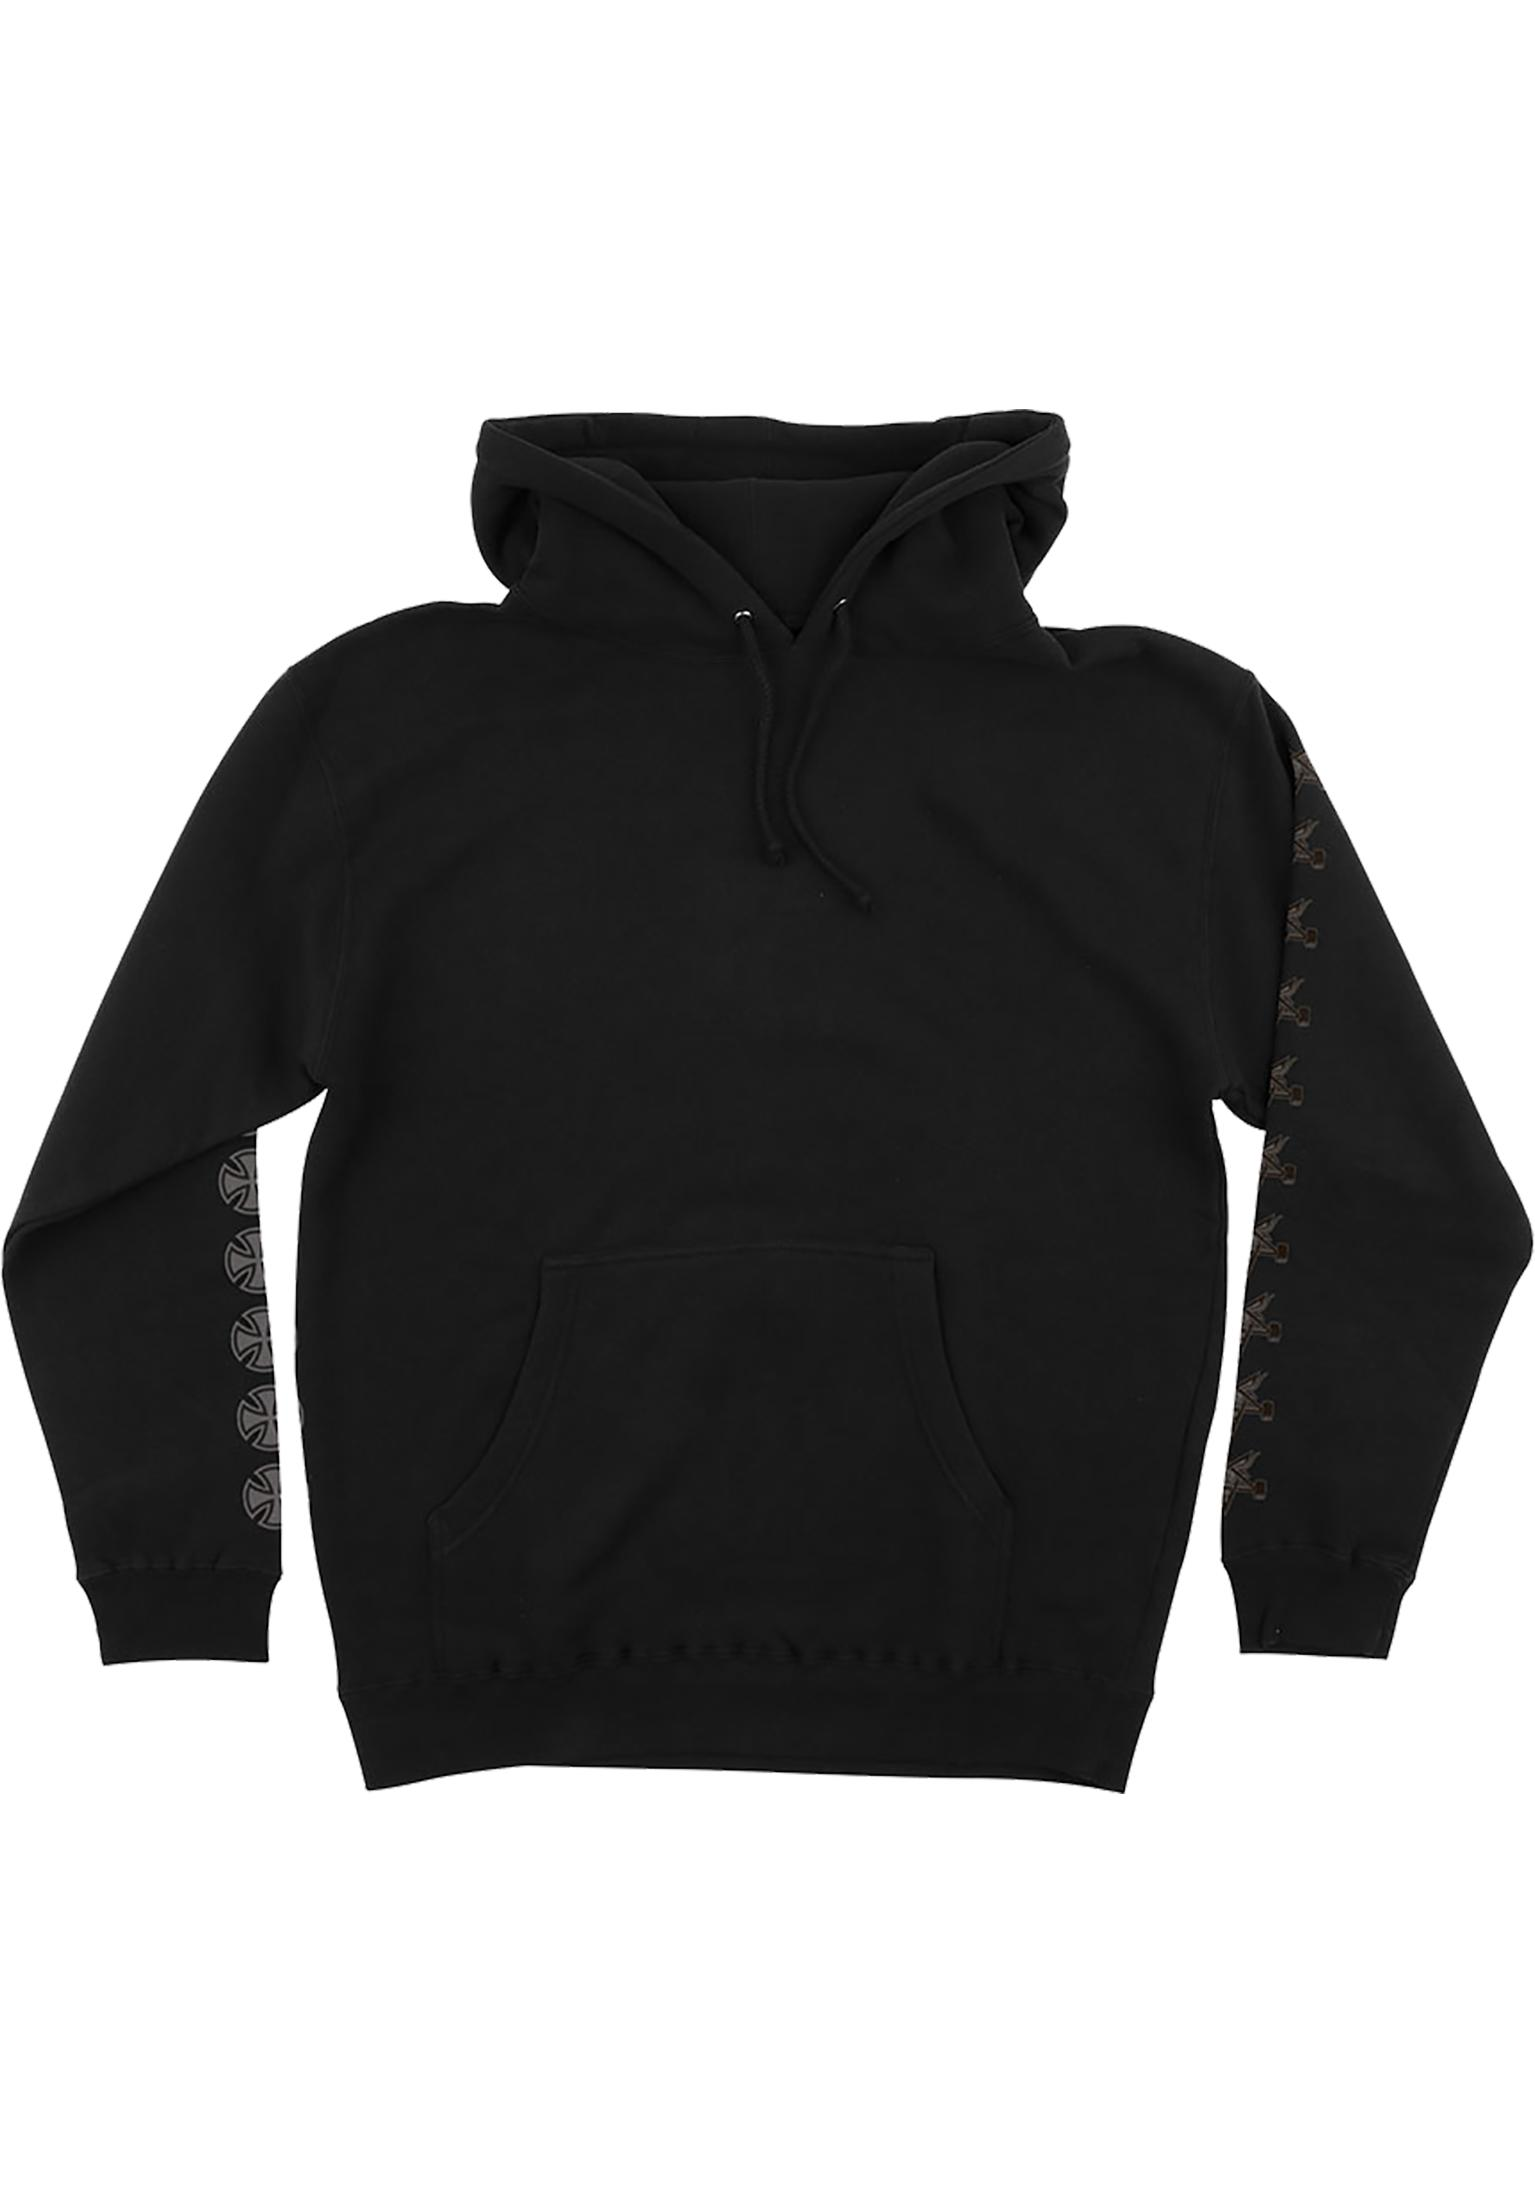 Titus_Muenchen_independent-hoodie-thrasher-pentagram-cross-lightweight-black-0444942_front.jpg